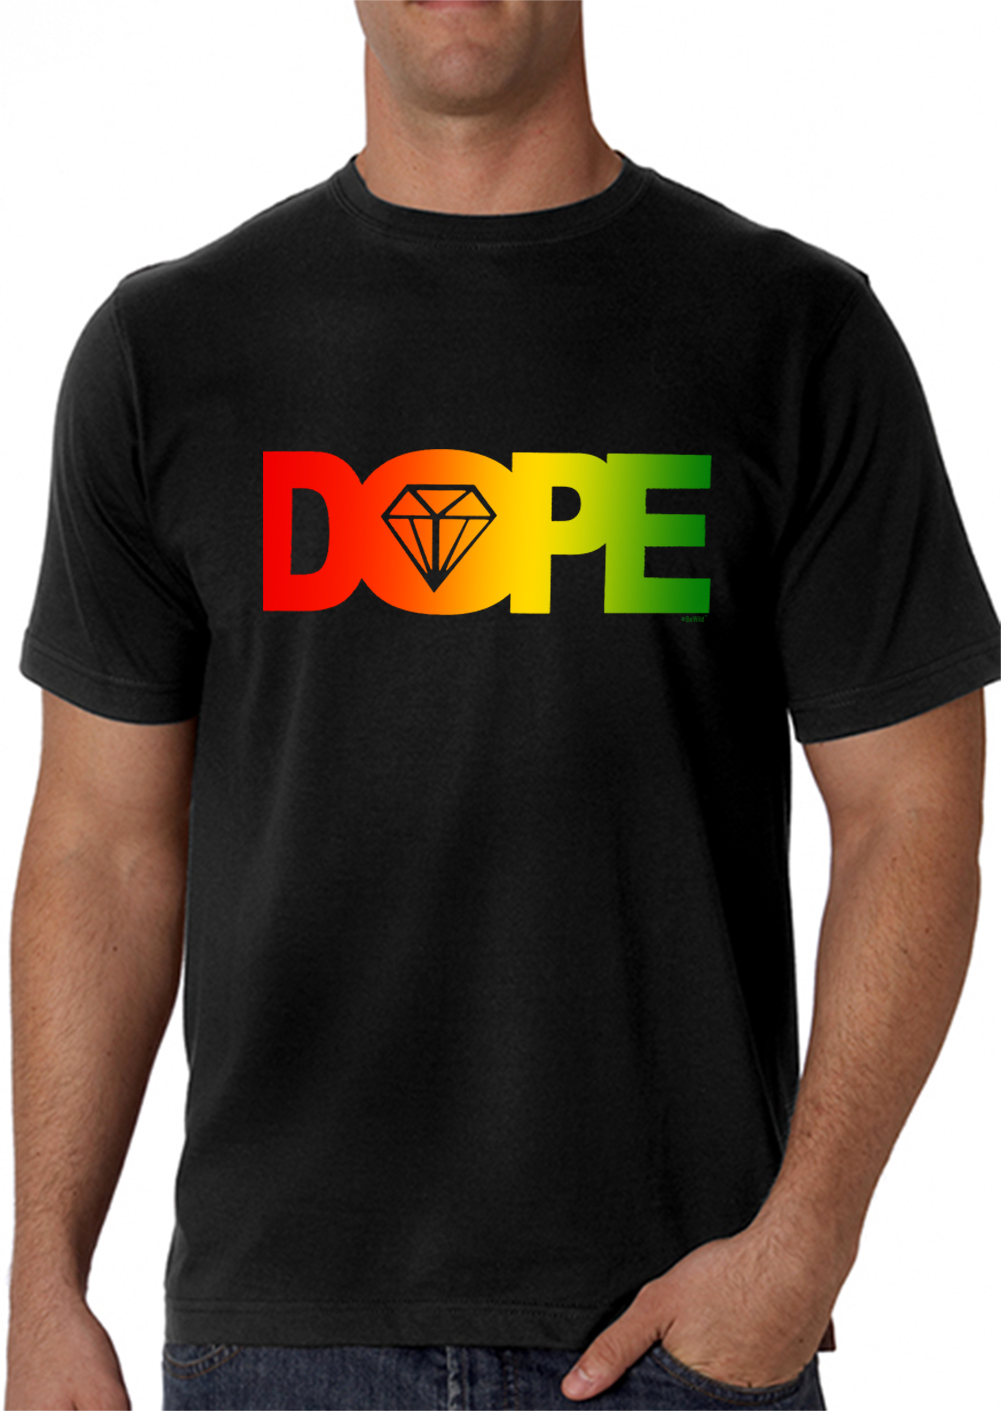 Branded Hoodies Cheap | Dope Shirts | Most Dope Shirt